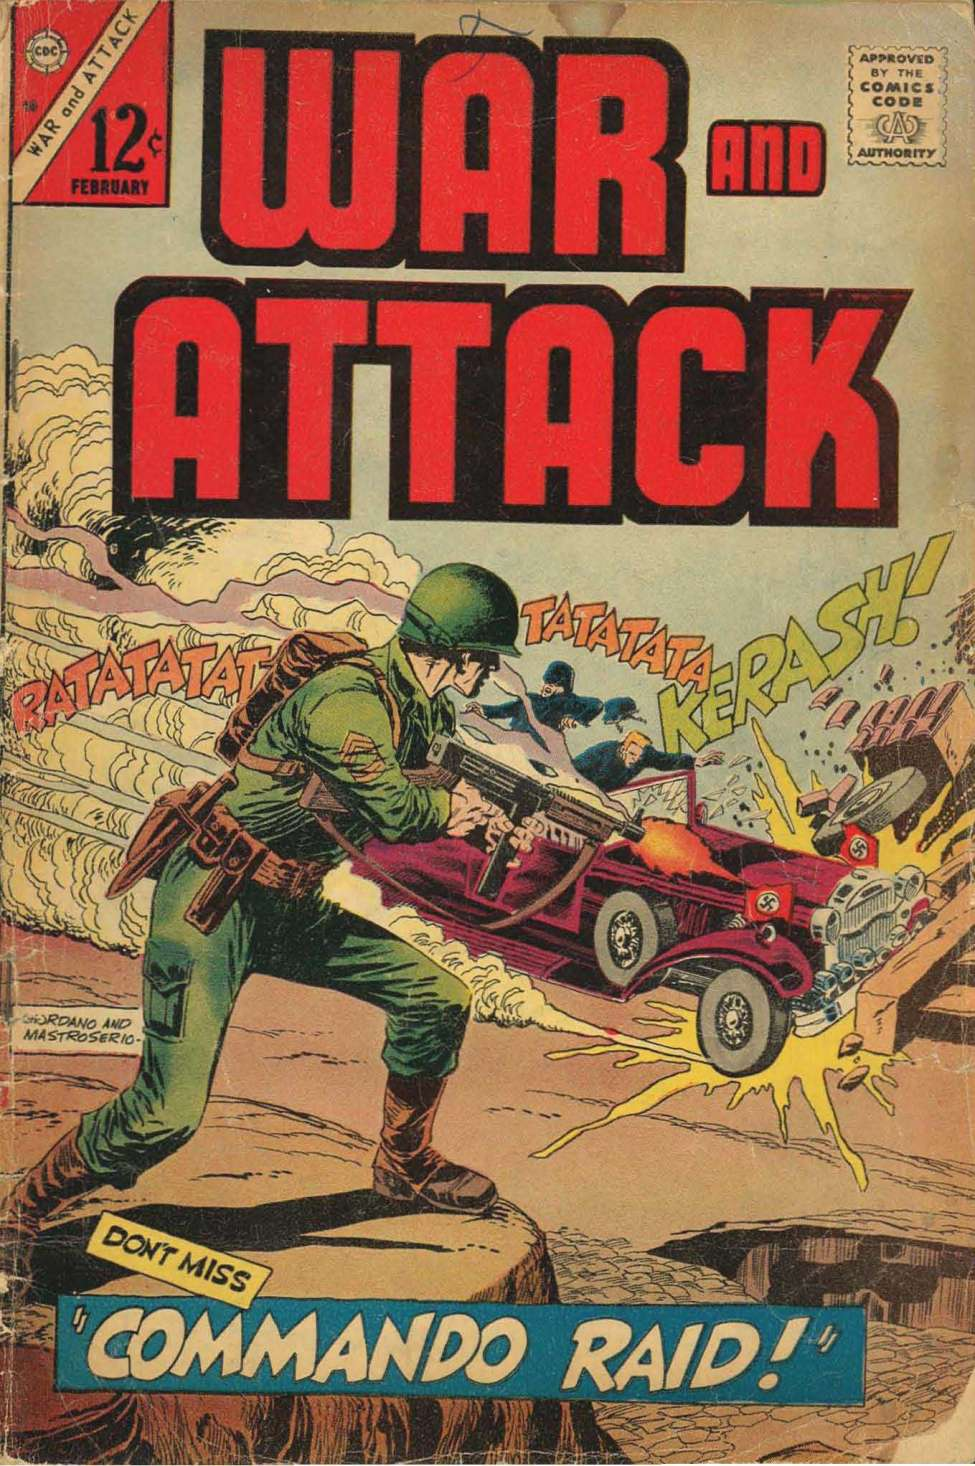 Comic Book Cover For War and Attack #58